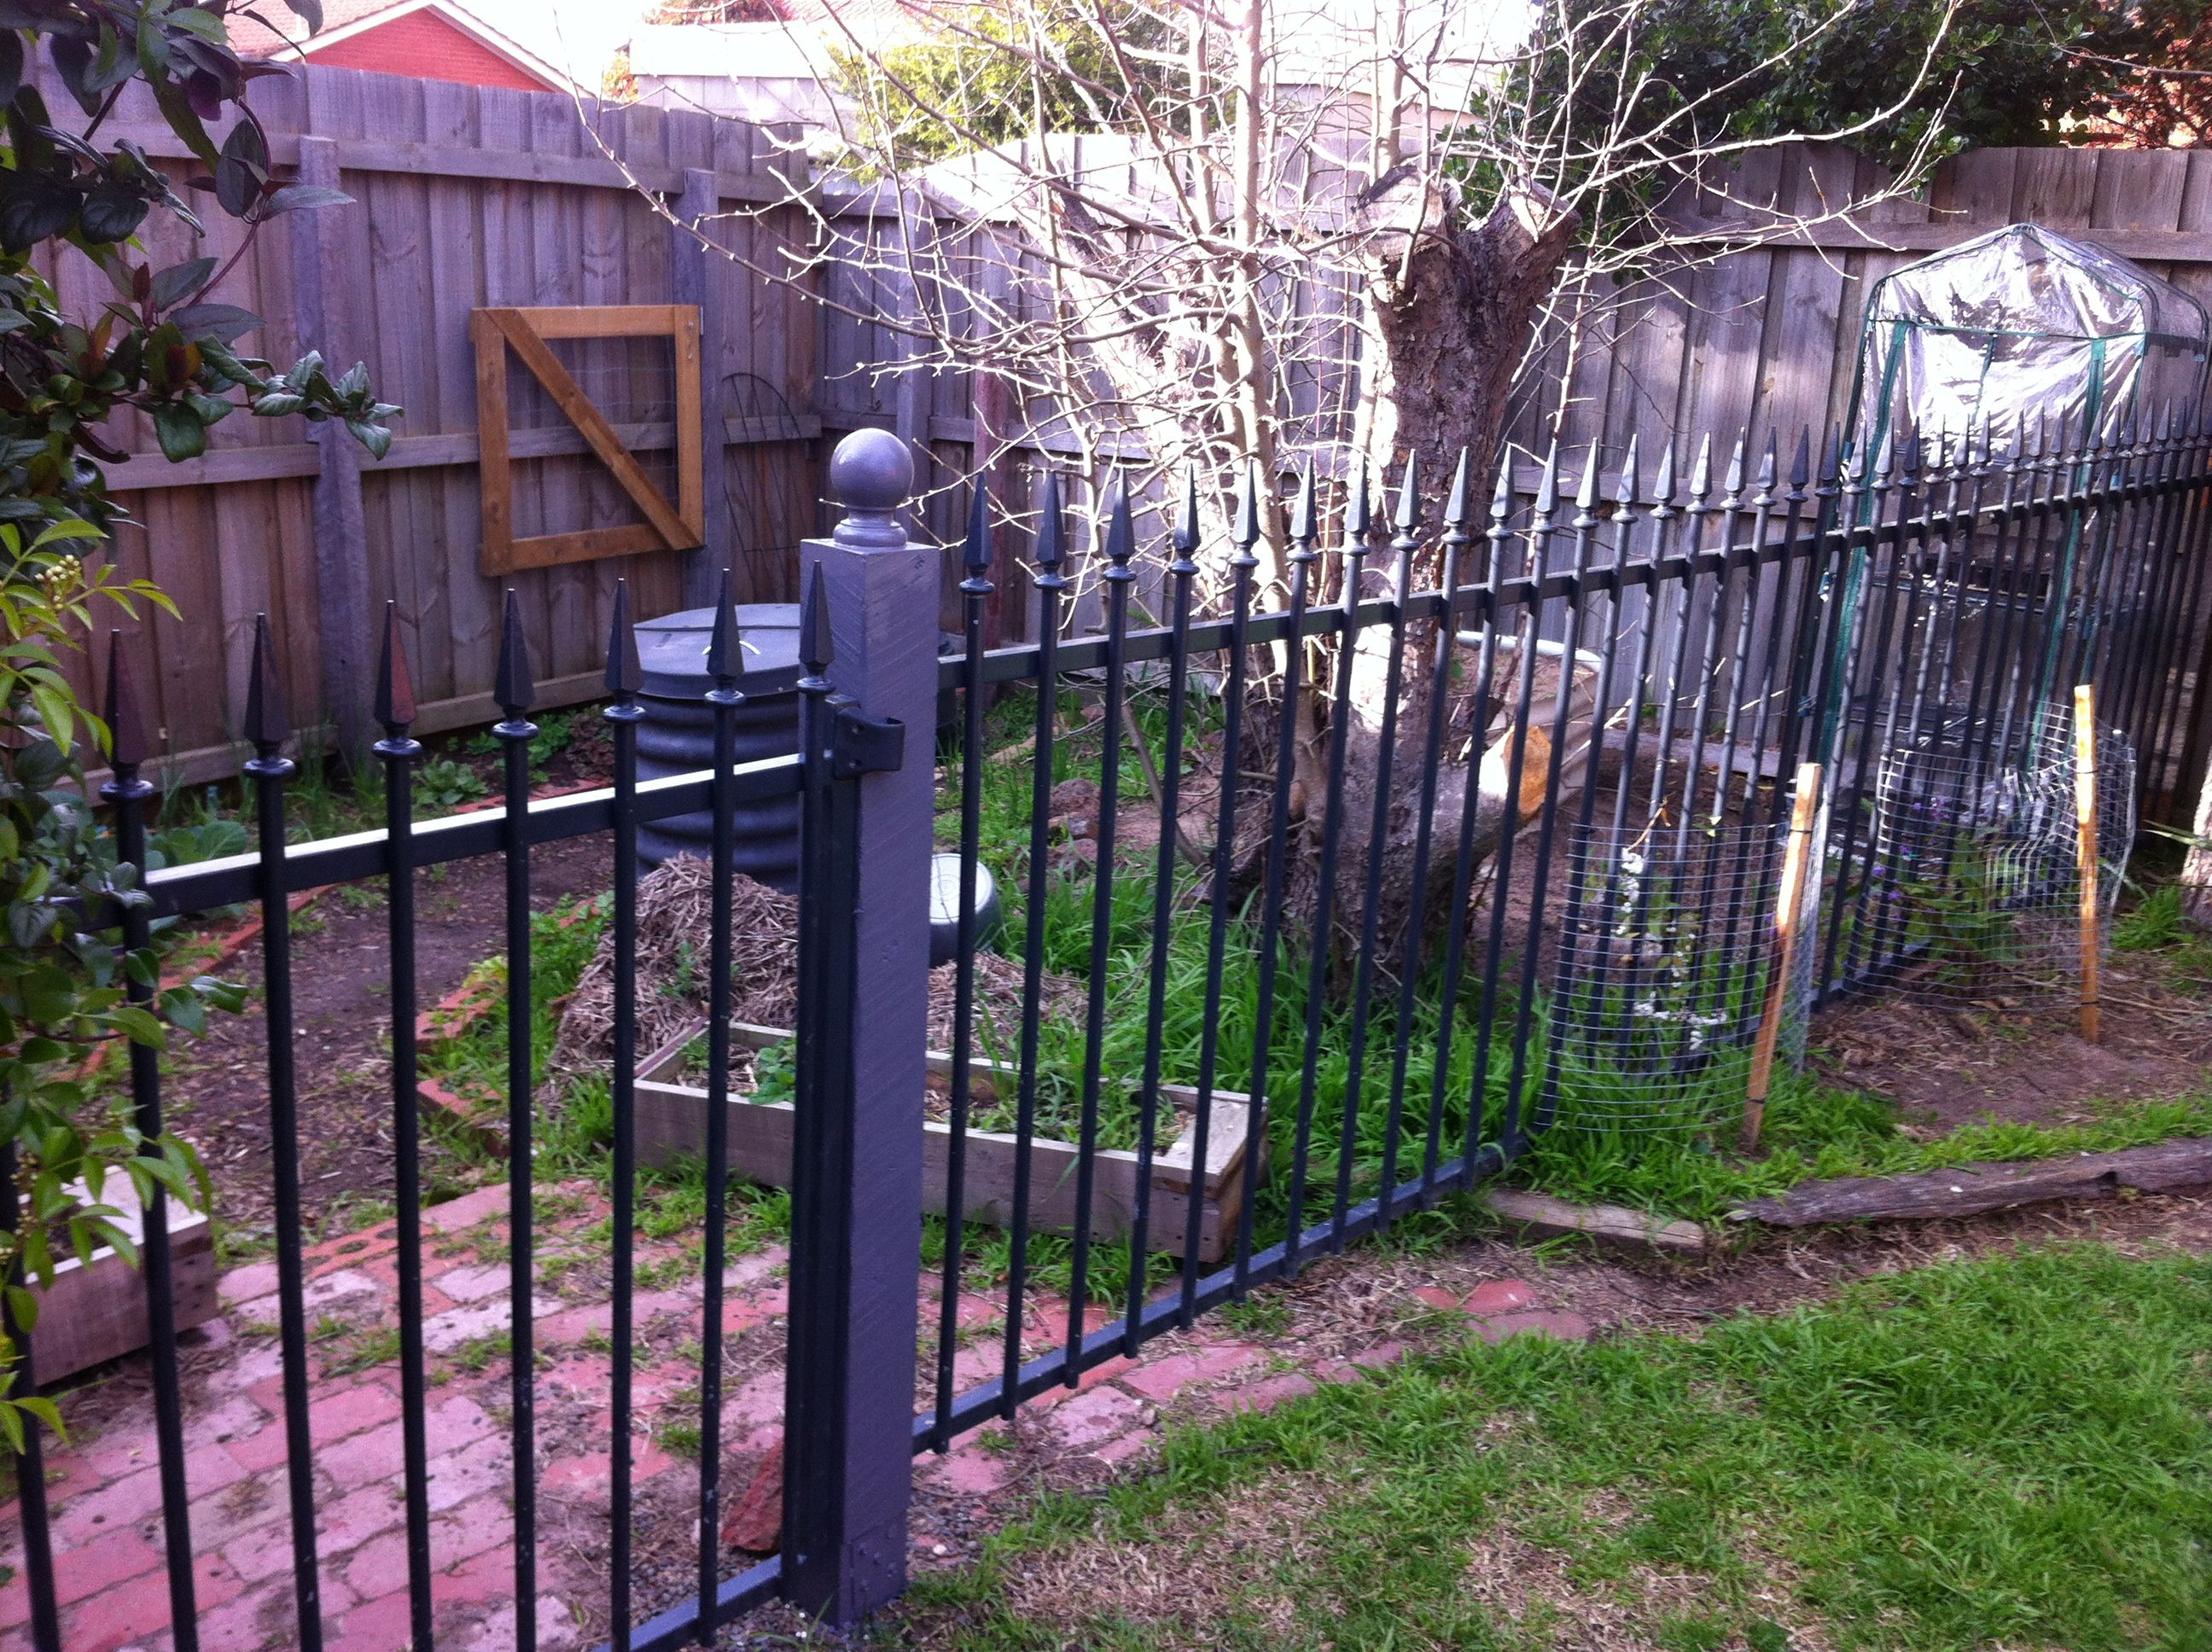 Privacy screen for chain link fence ebay - Old Pool Fence Purchased From Ebay Now Used To Keep The Digging Dog Out Of The